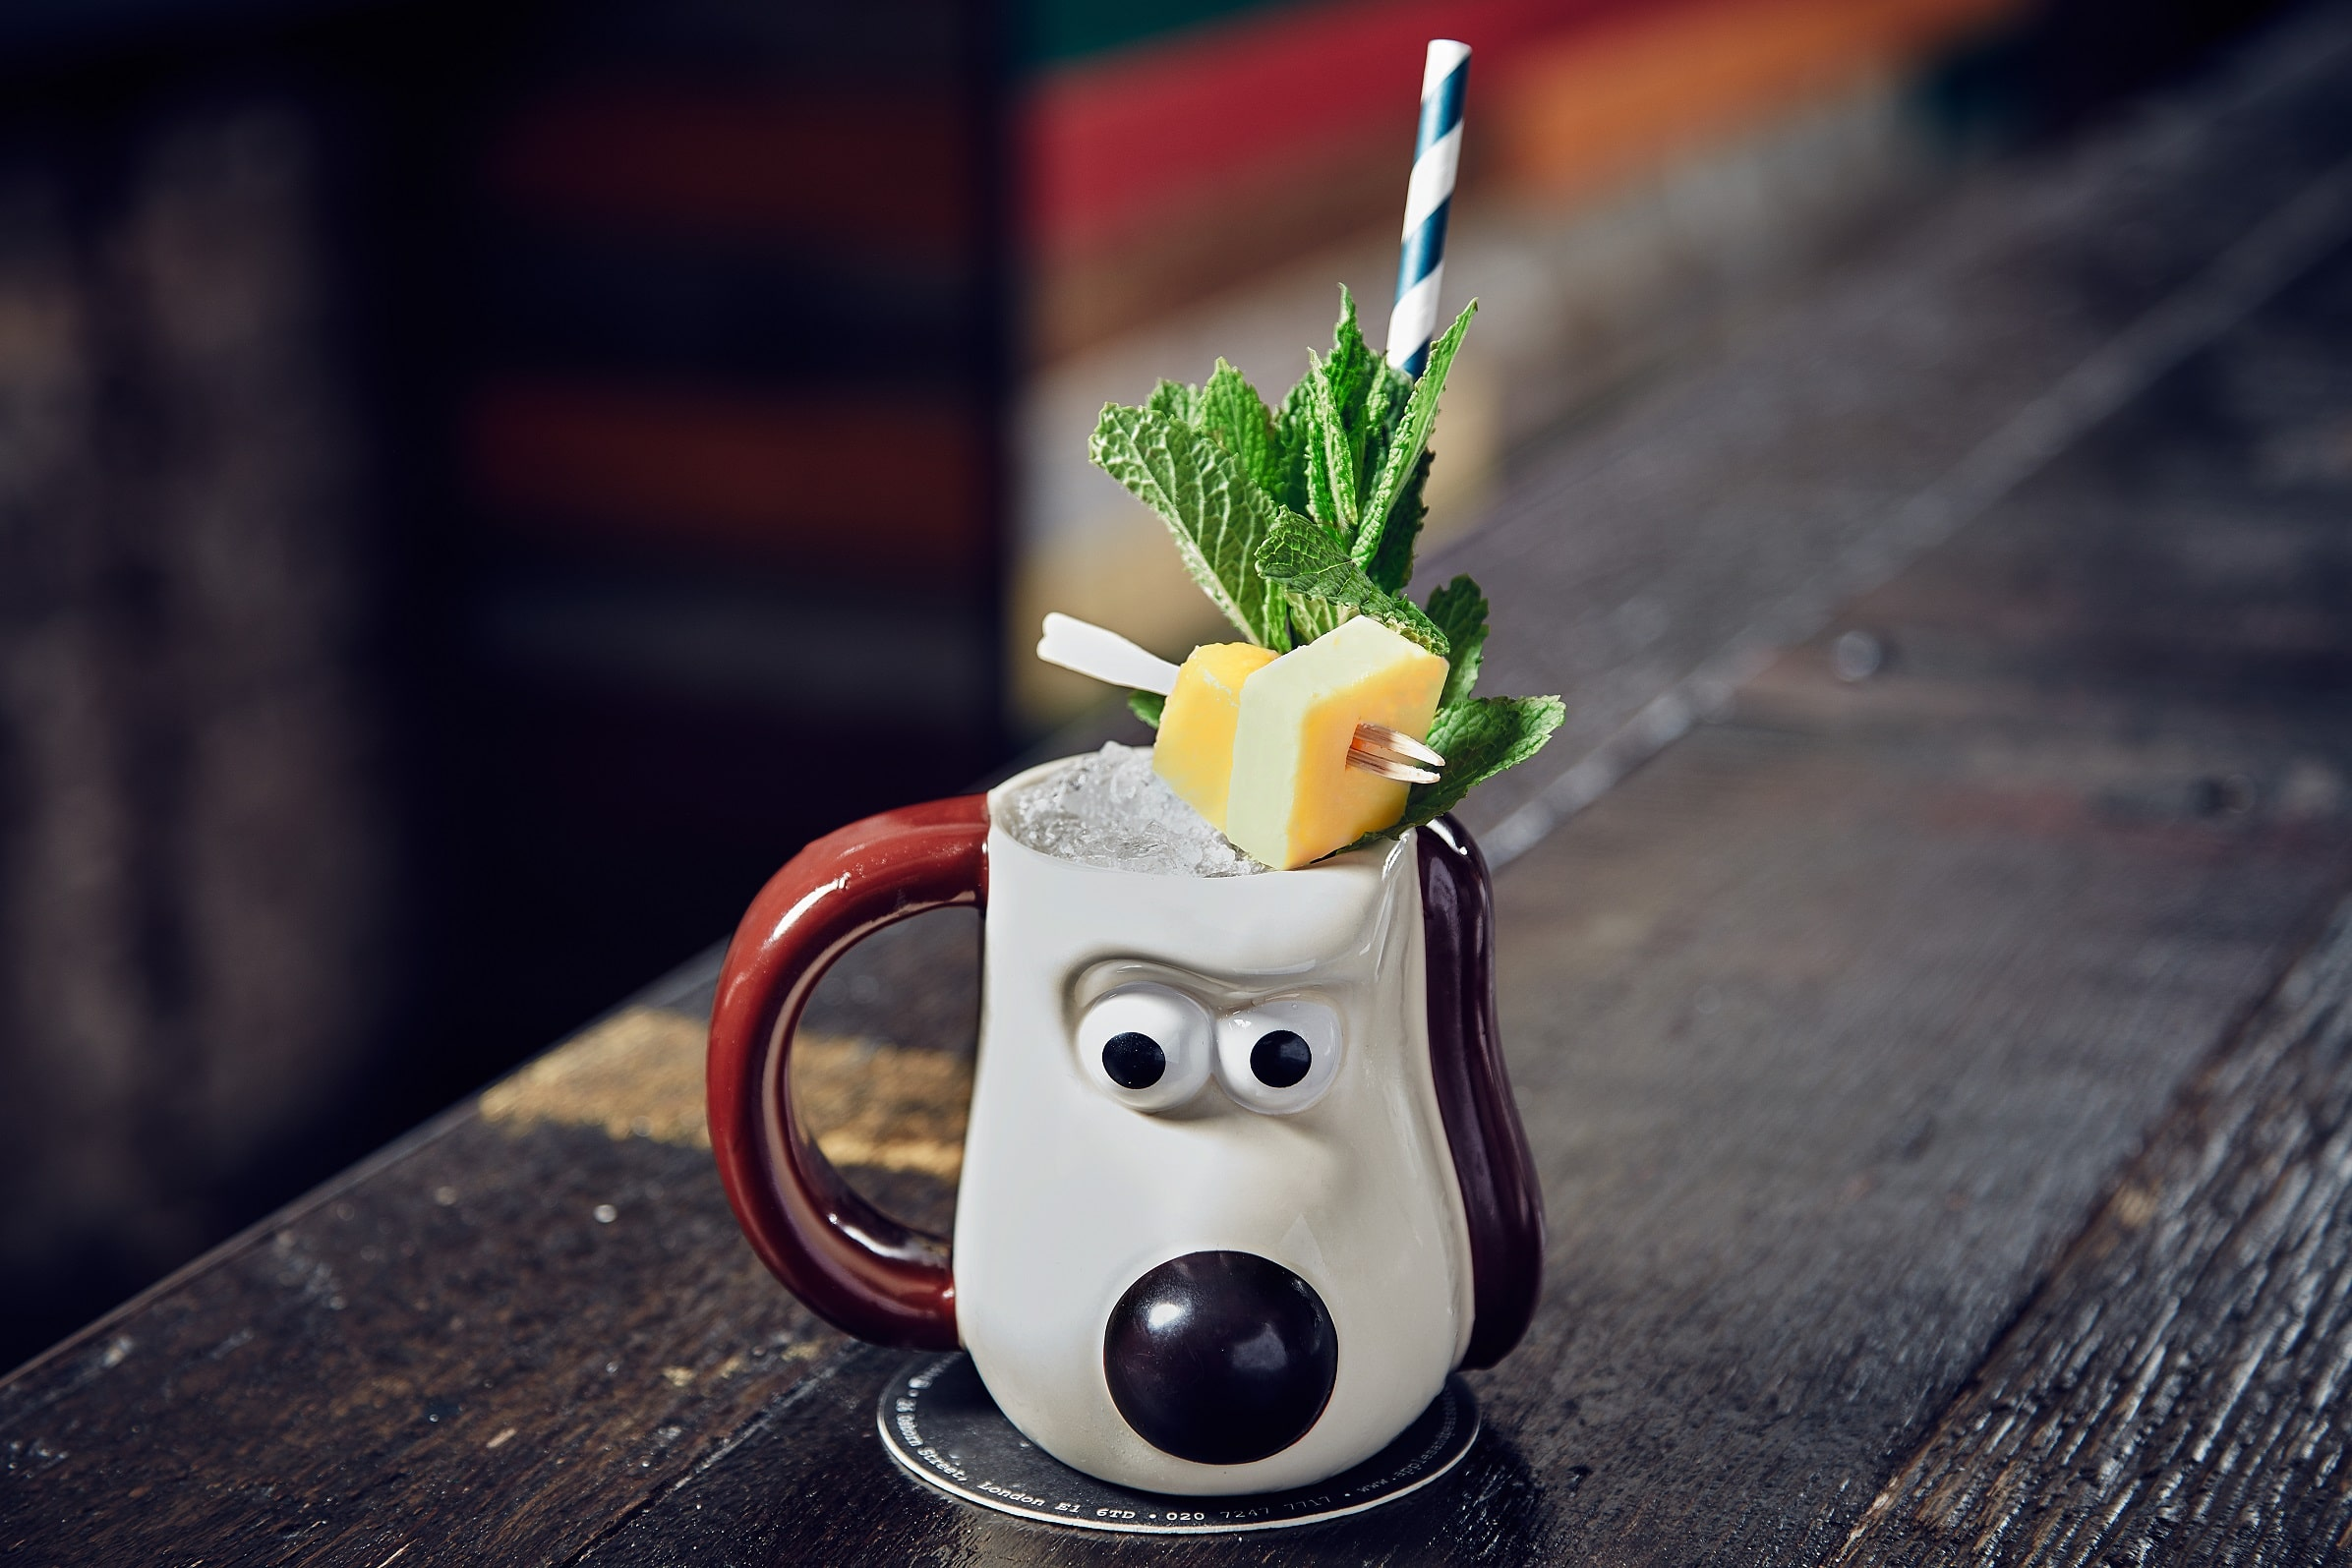 A Gromit mug containing a cocktail with a cheese garnish at Apples and Pears, one the best bars in London